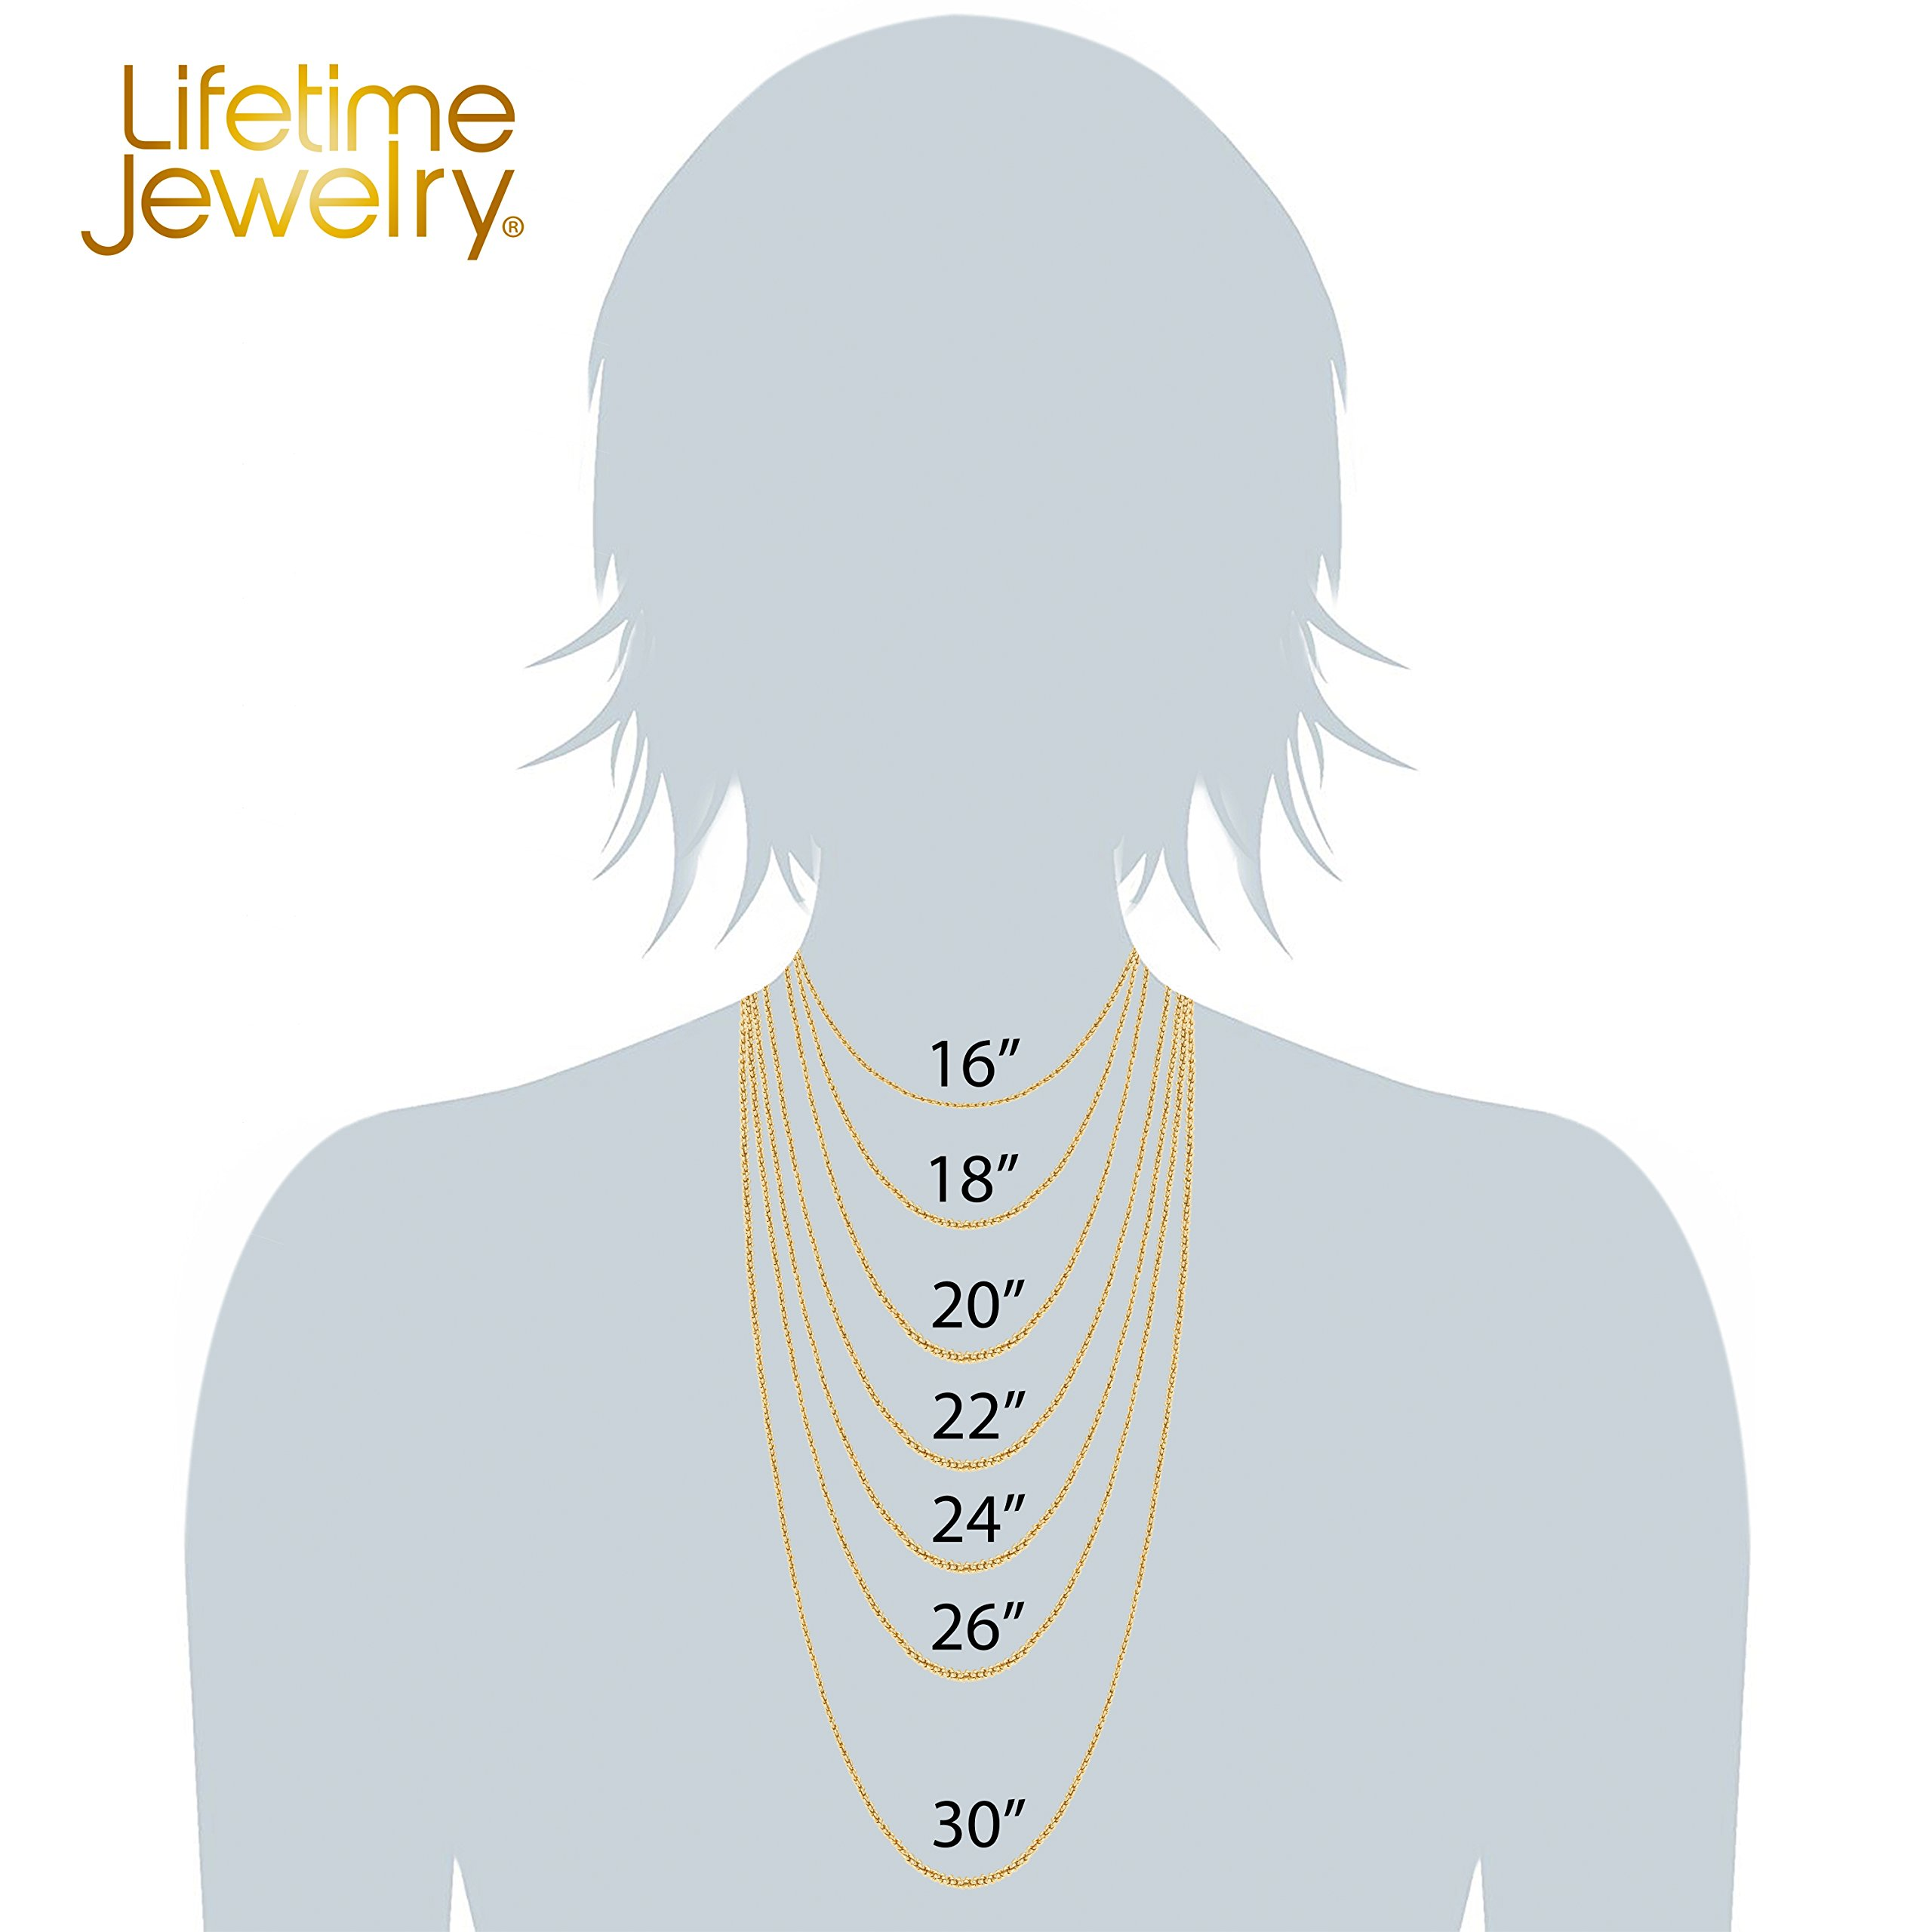 Lifetime Jewelry 1mm Rope Chain 24K White or Yellow Gold Plated Pendant Necklace for Men and Women Made Thin for Charms 16 to 30 Inches (22) by Lifetime Jewelry (Image #6)